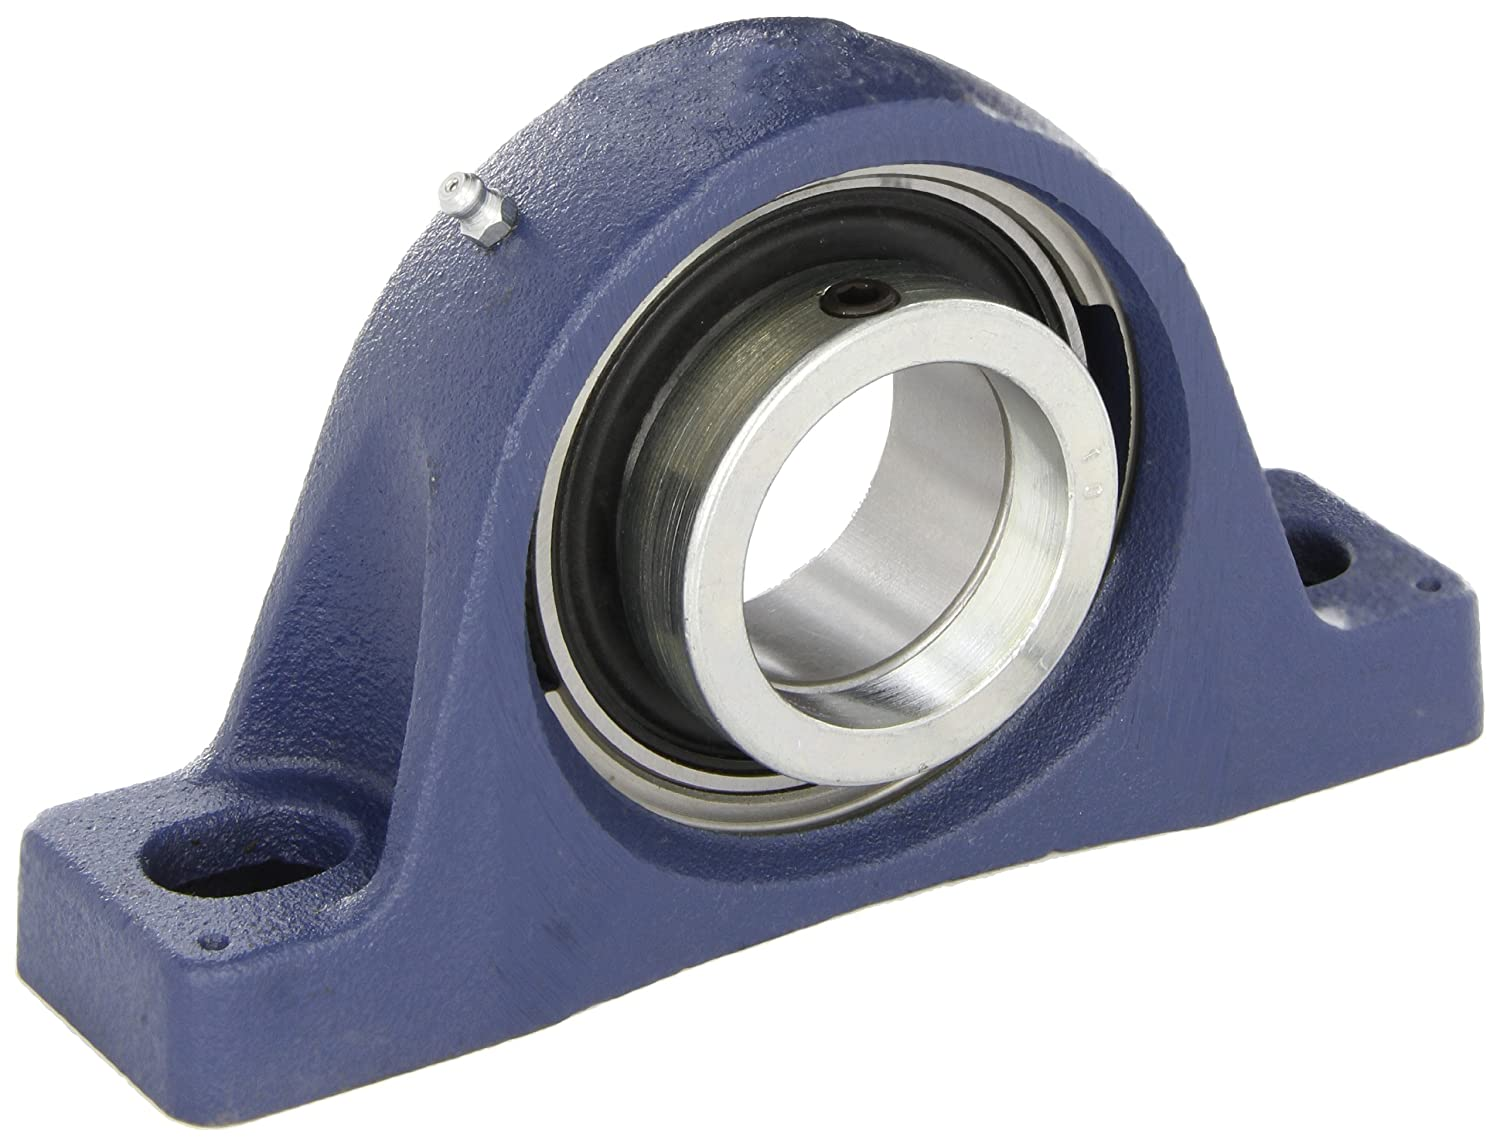 SKF SY 30 FM Pillow Block Ball Bearing Eccentric Collar 2 Bolts Non-Expansion Type Contact Seals 117.500mm Bolt Hole Spacing Width 42.900mm Base To Center Height Metric 30mm Shaft Cast Iron